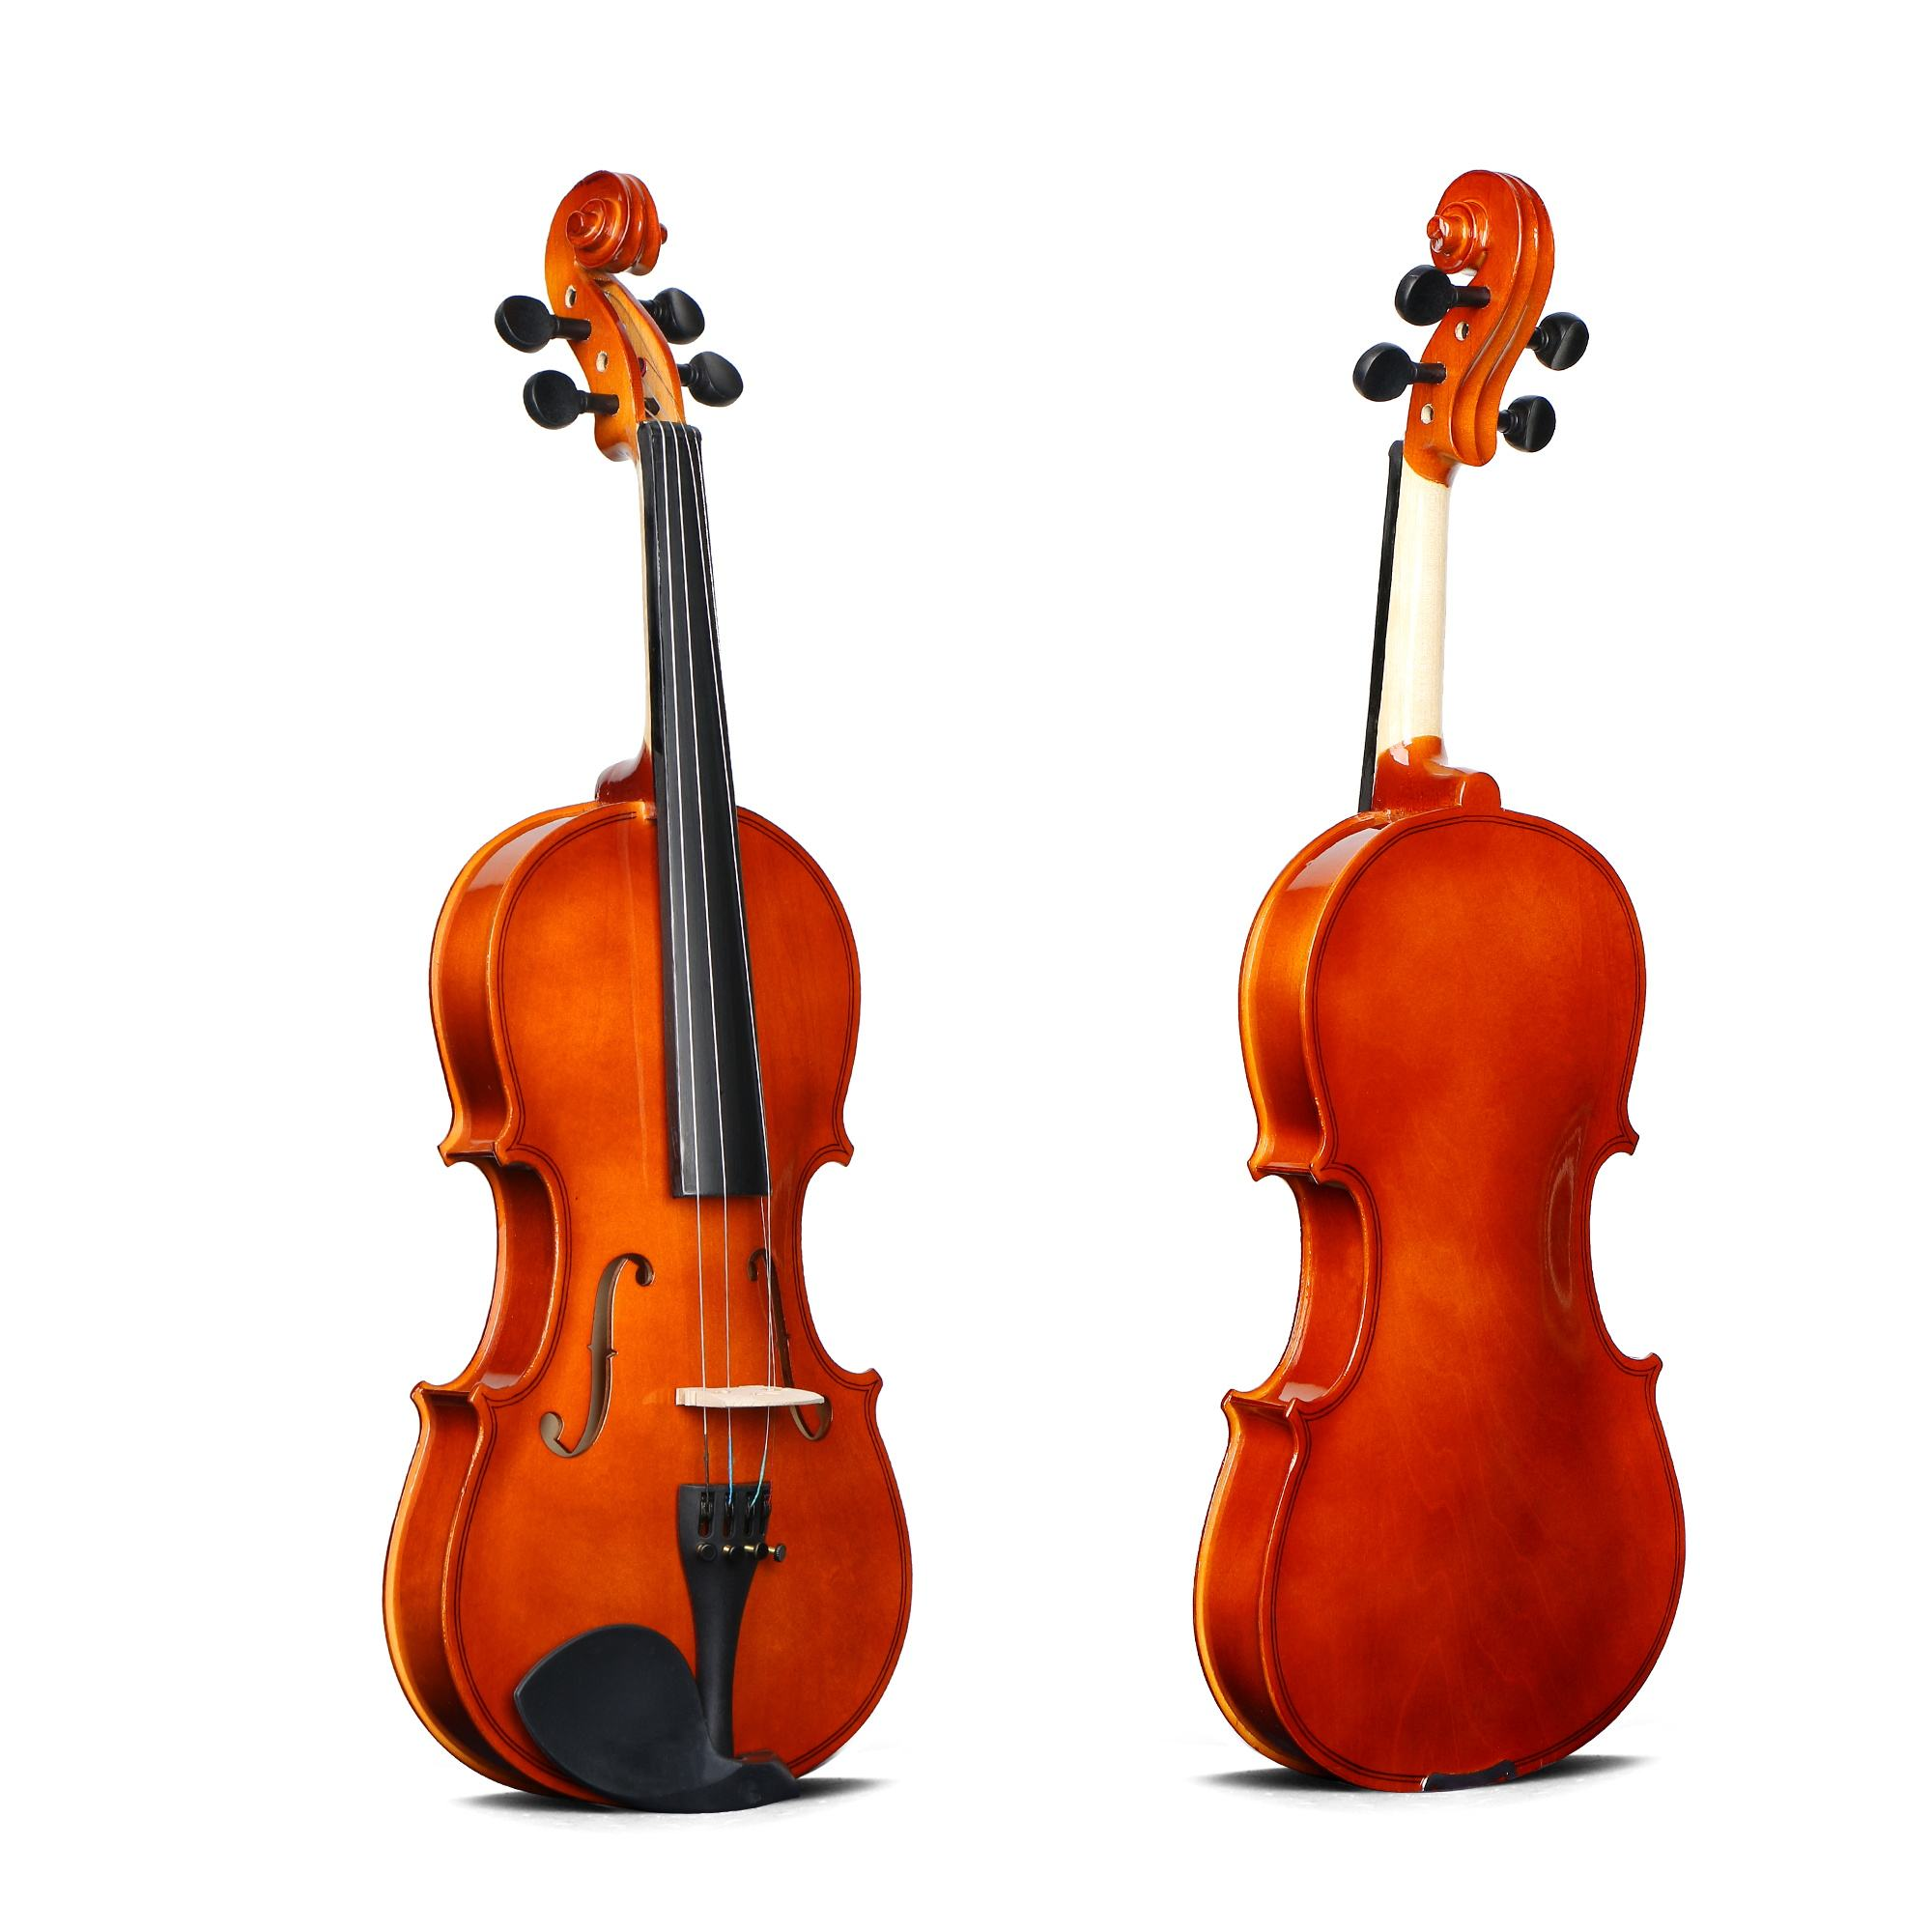 Professional handmade new design cheap youth violins for sale